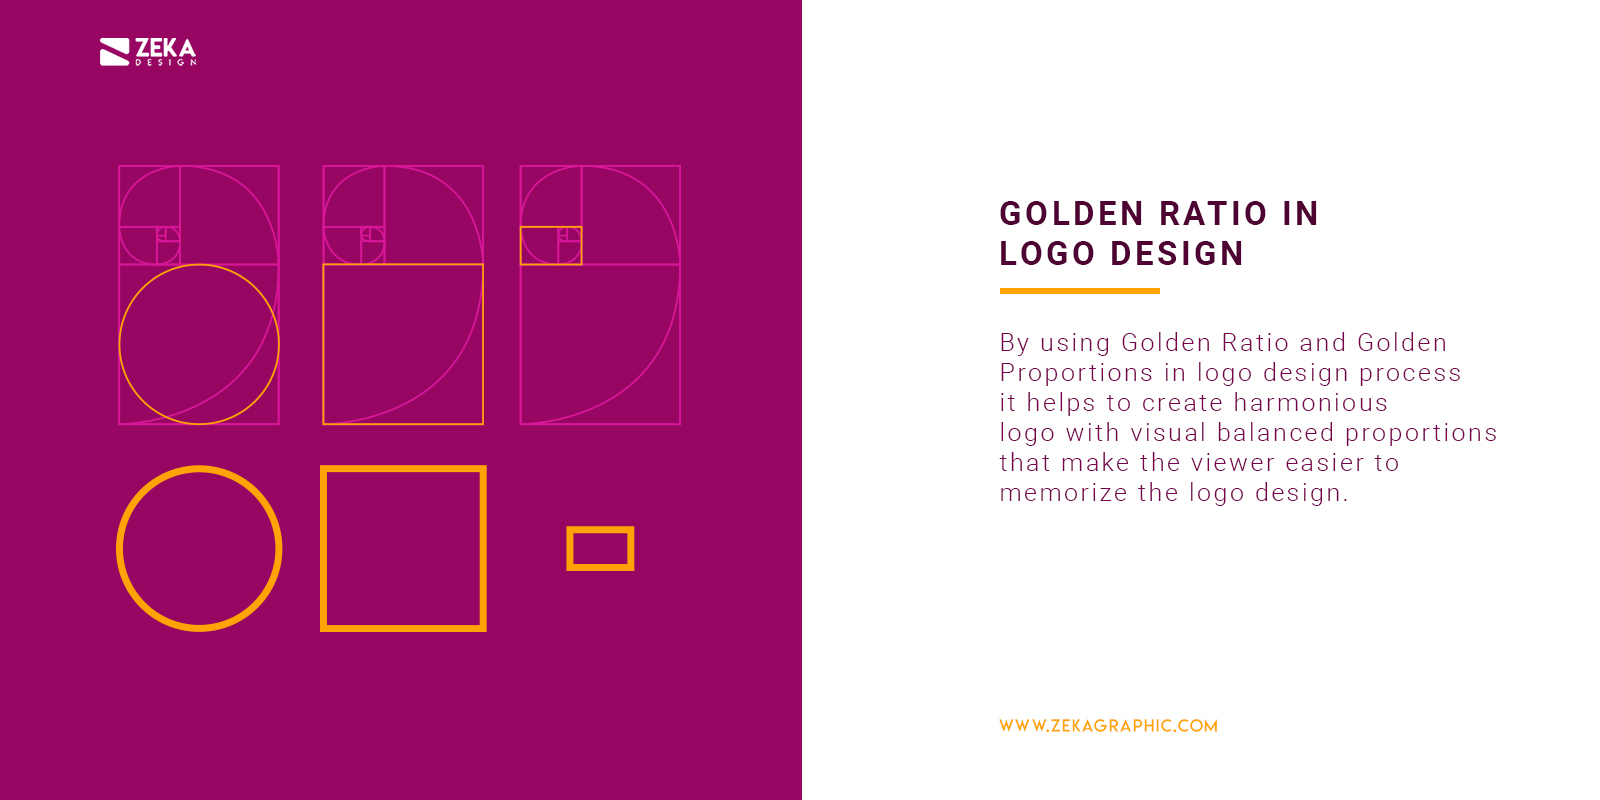 Hos To Use Golden Ratio in Logo Design Explained